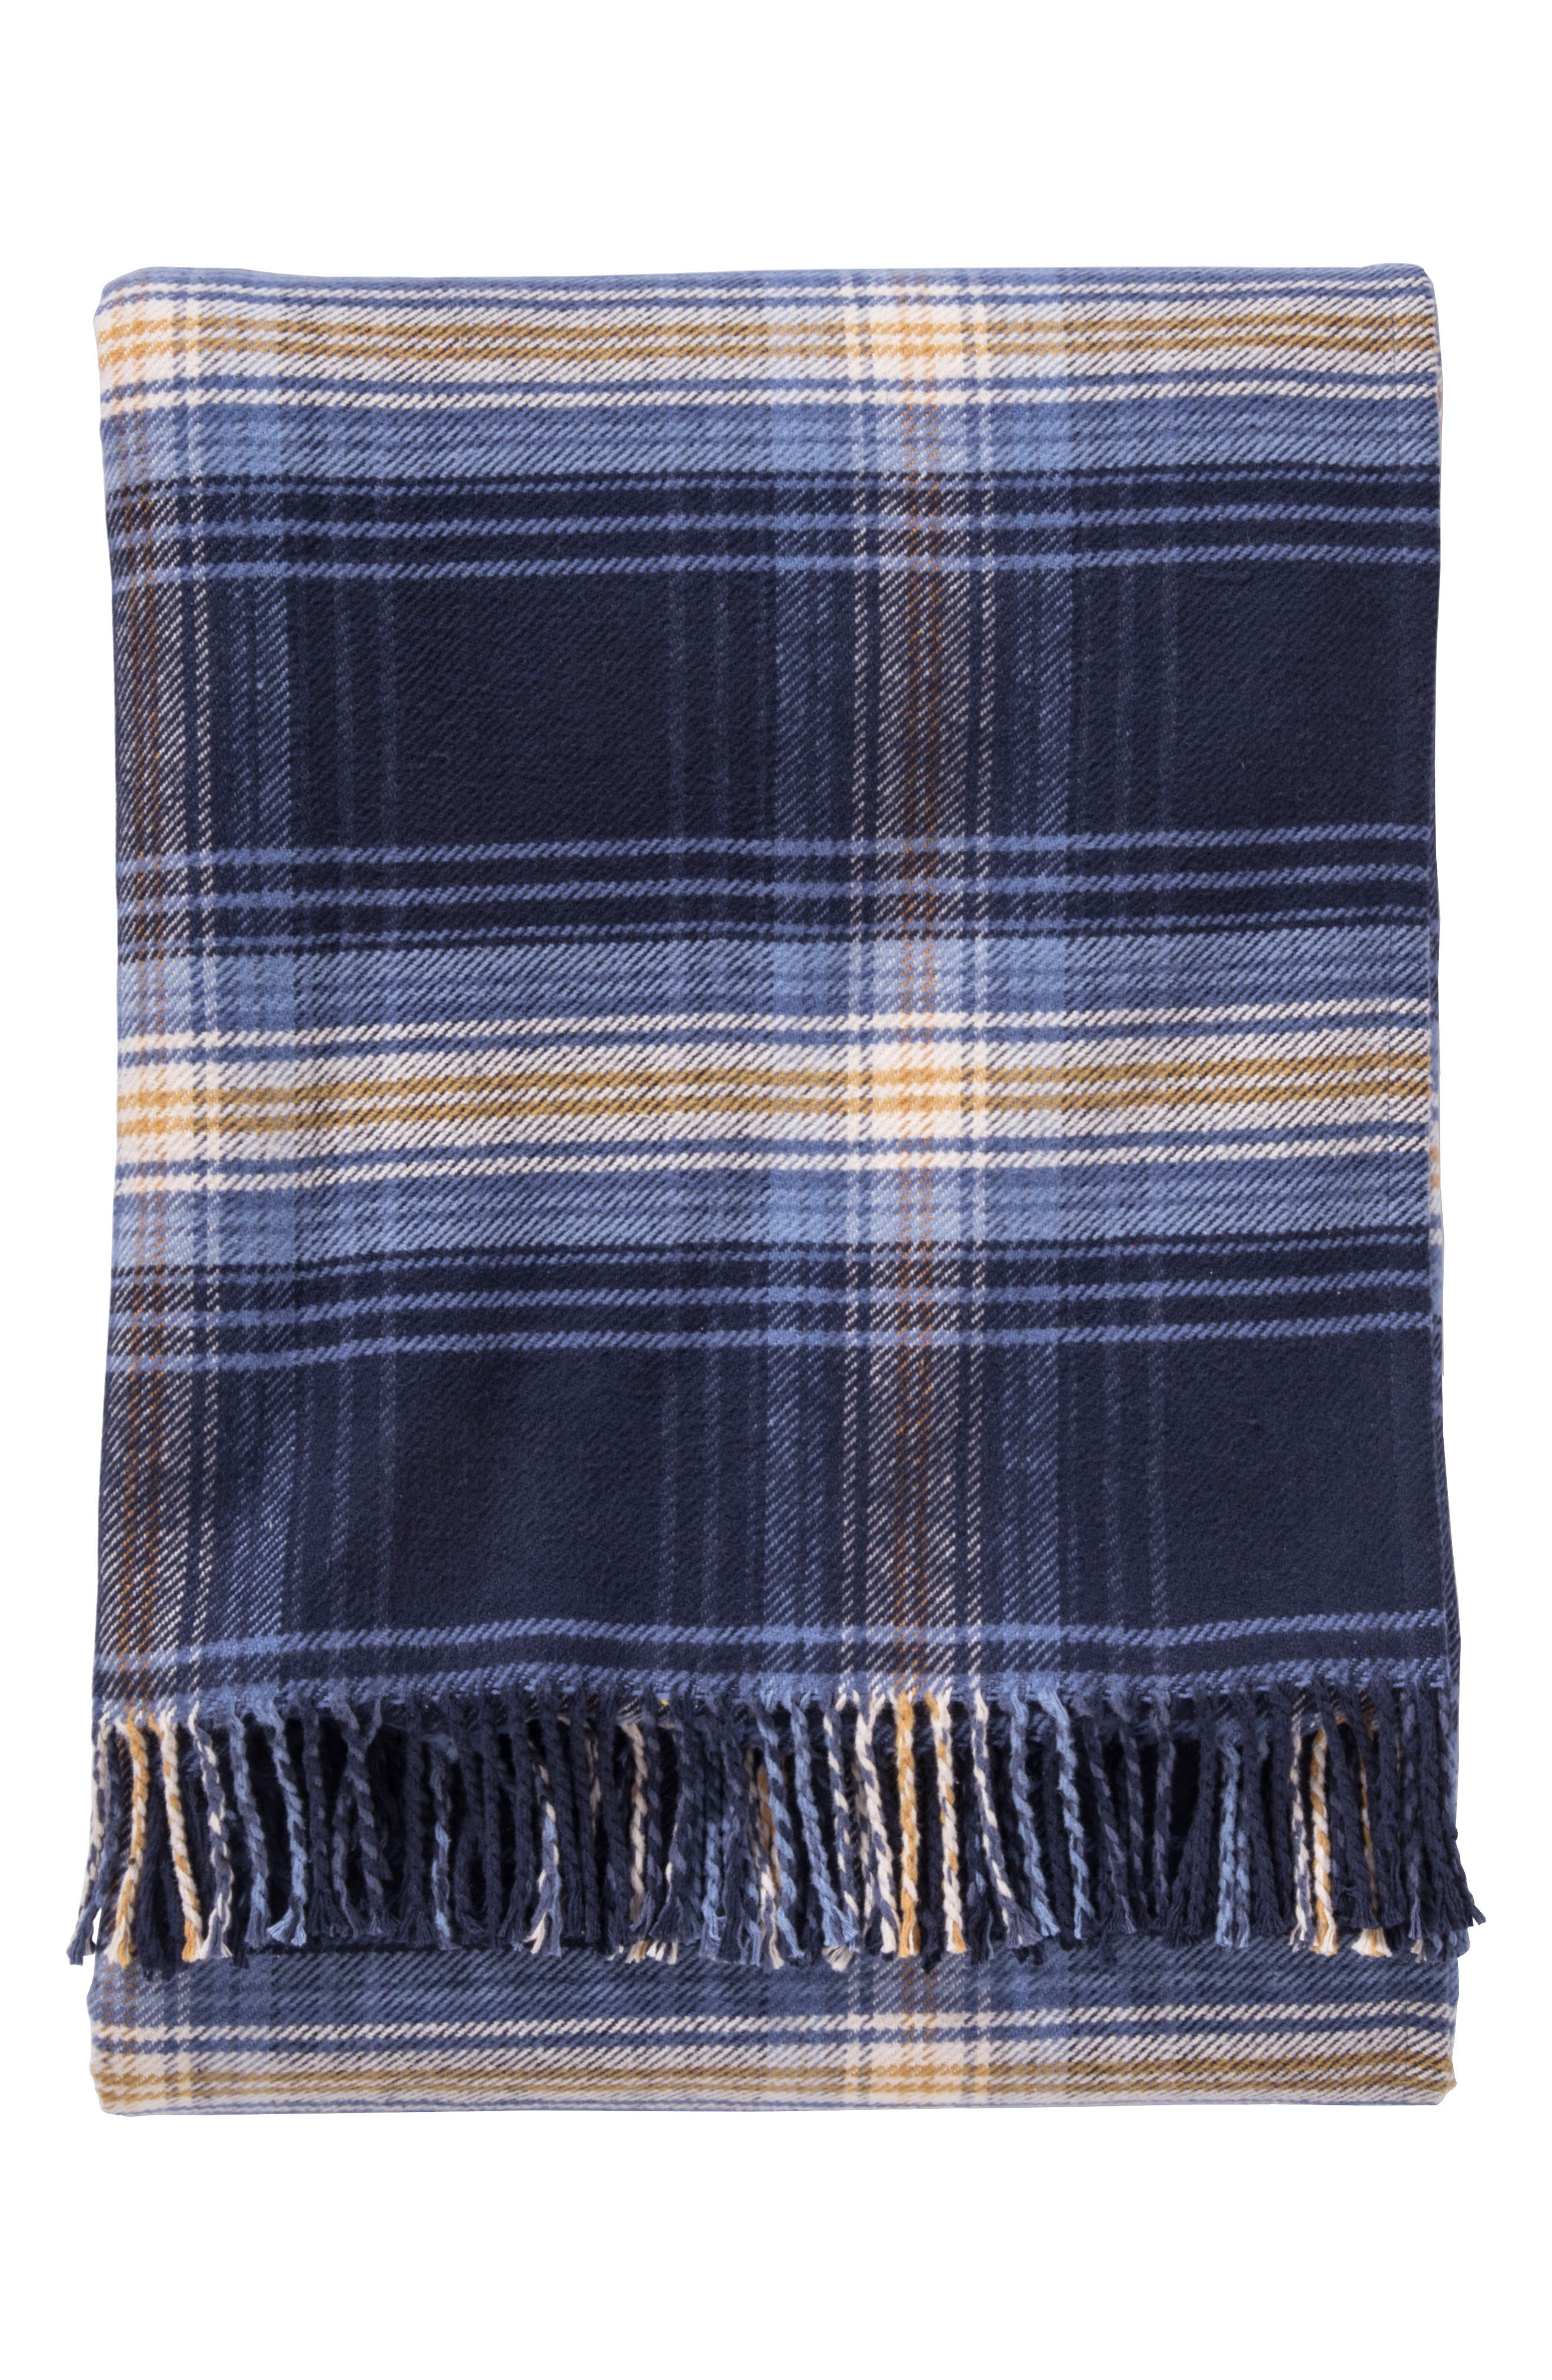 PENDLETON,                             Ombre Plaid Throw,                             Main thumbnail 1, color,                             BLUE AND GOLD